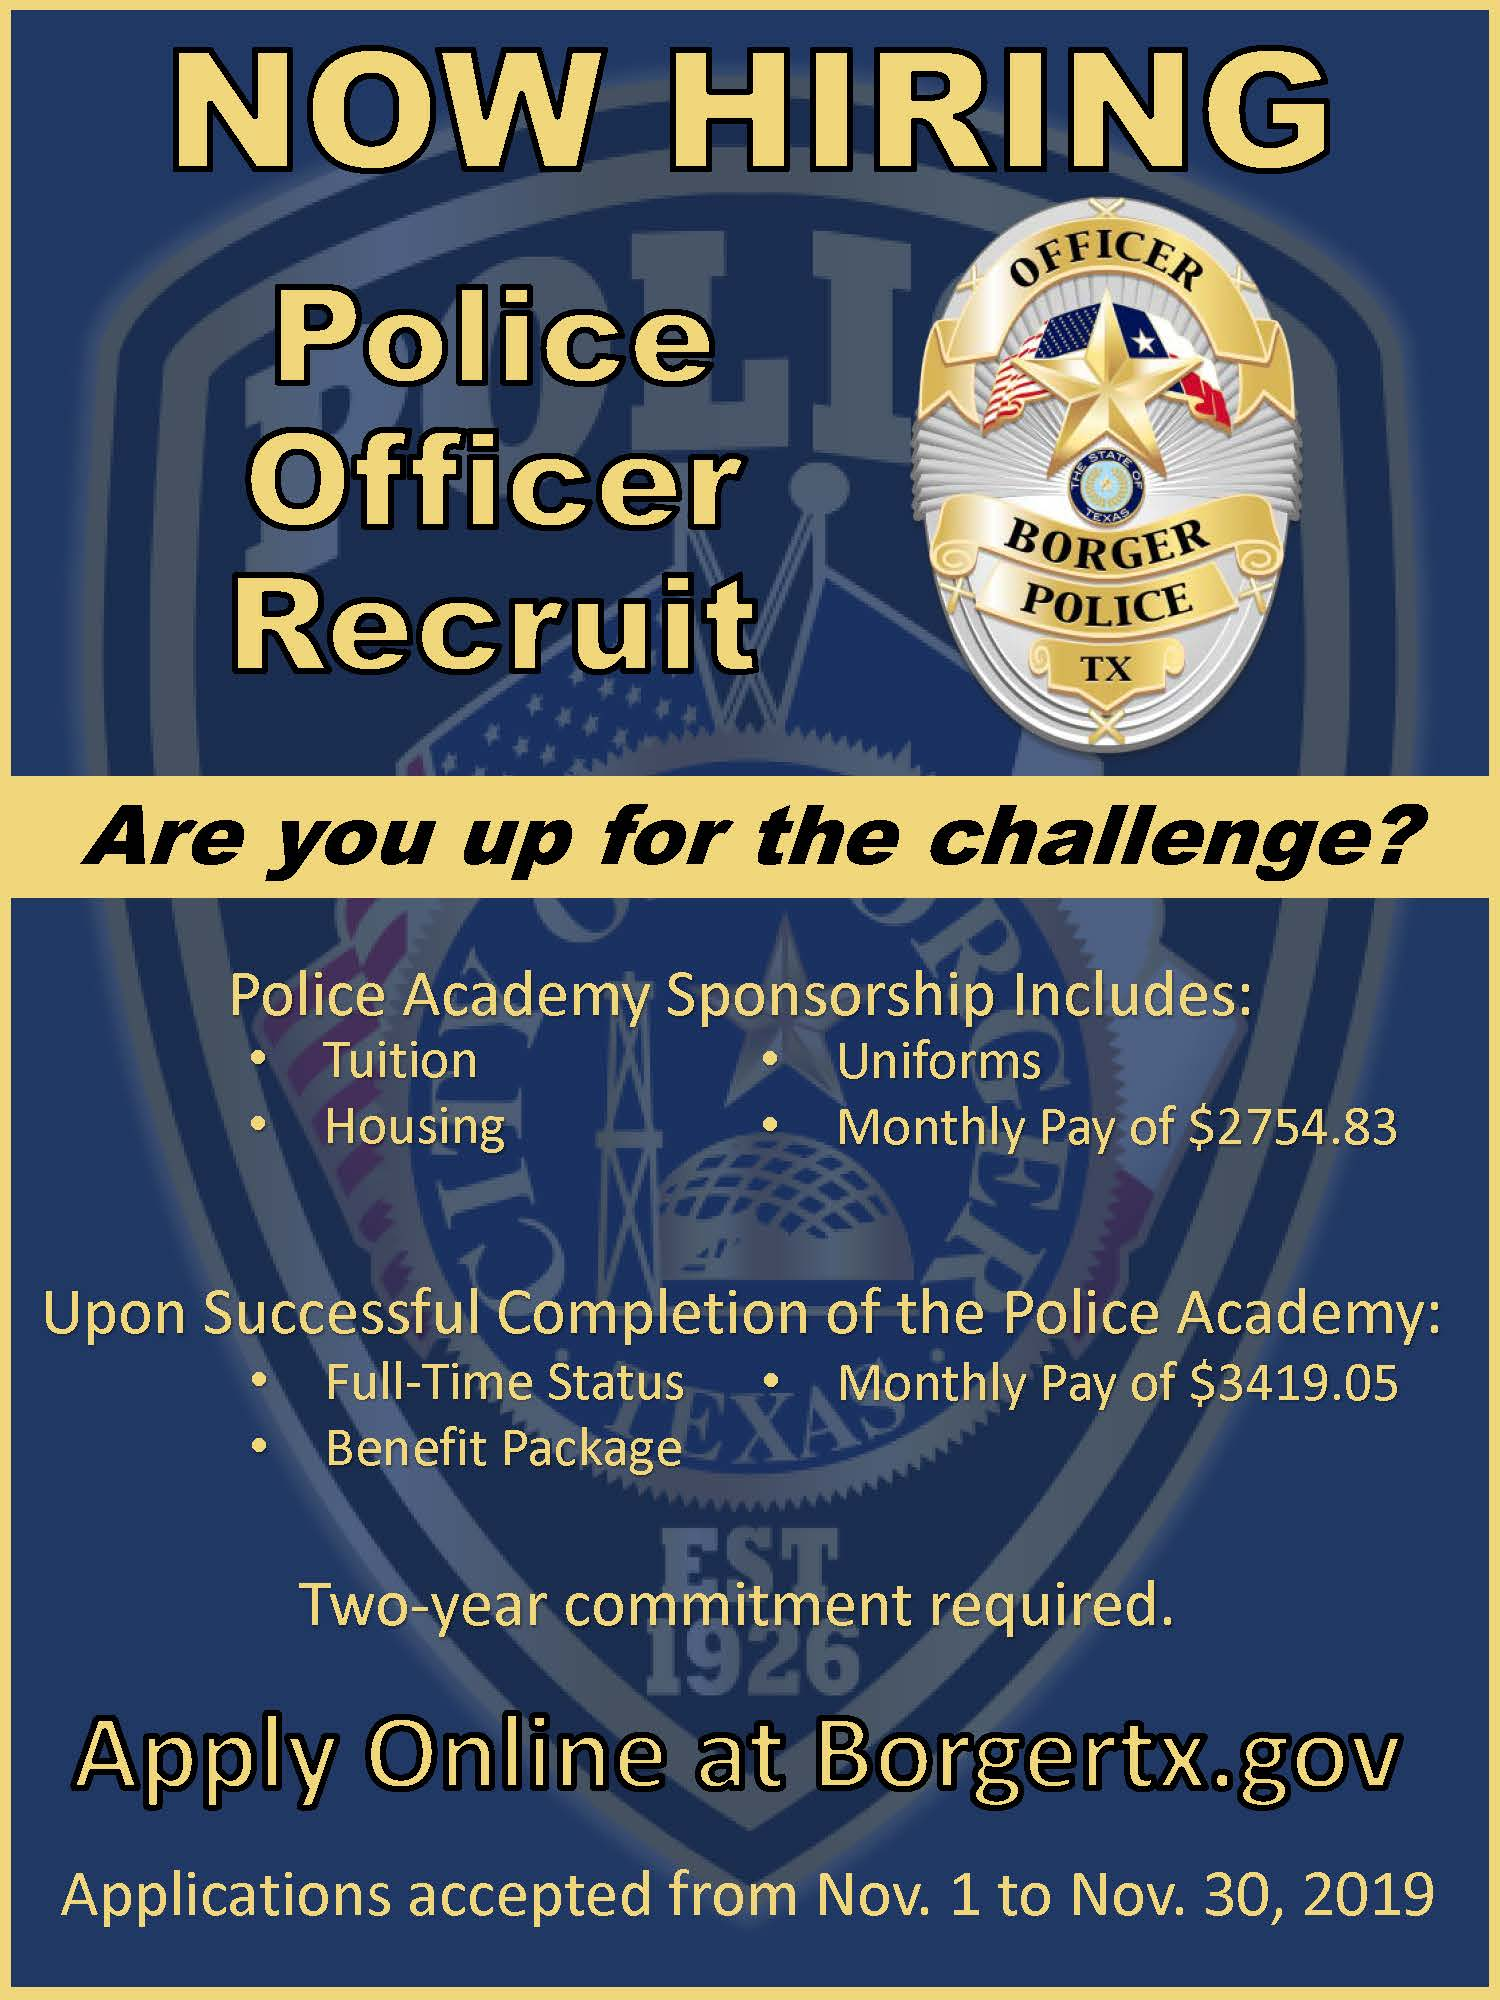 BPD Recruit Flyer 2019 (2)